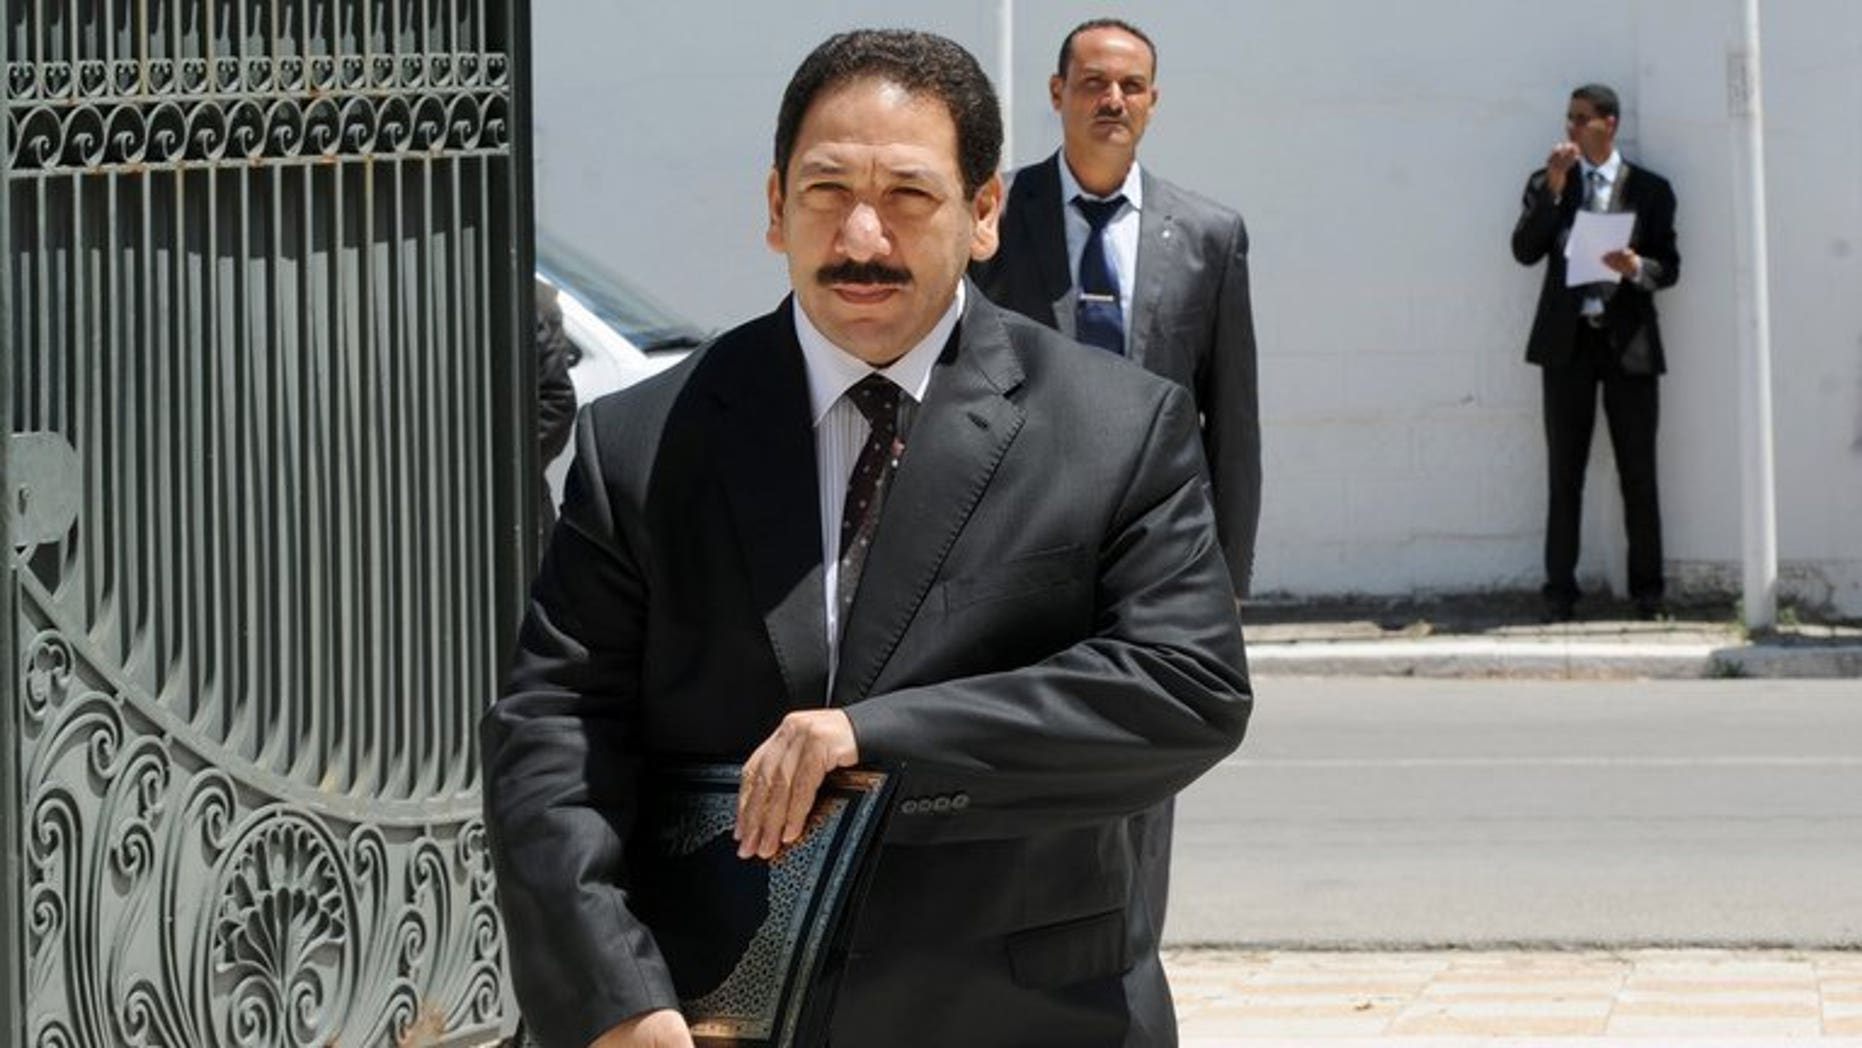 Tunisian Interior Minister Lotfi Ben Jeddou (C) arrives at the Prime Minister's office in Cathage on August 3, 2013.